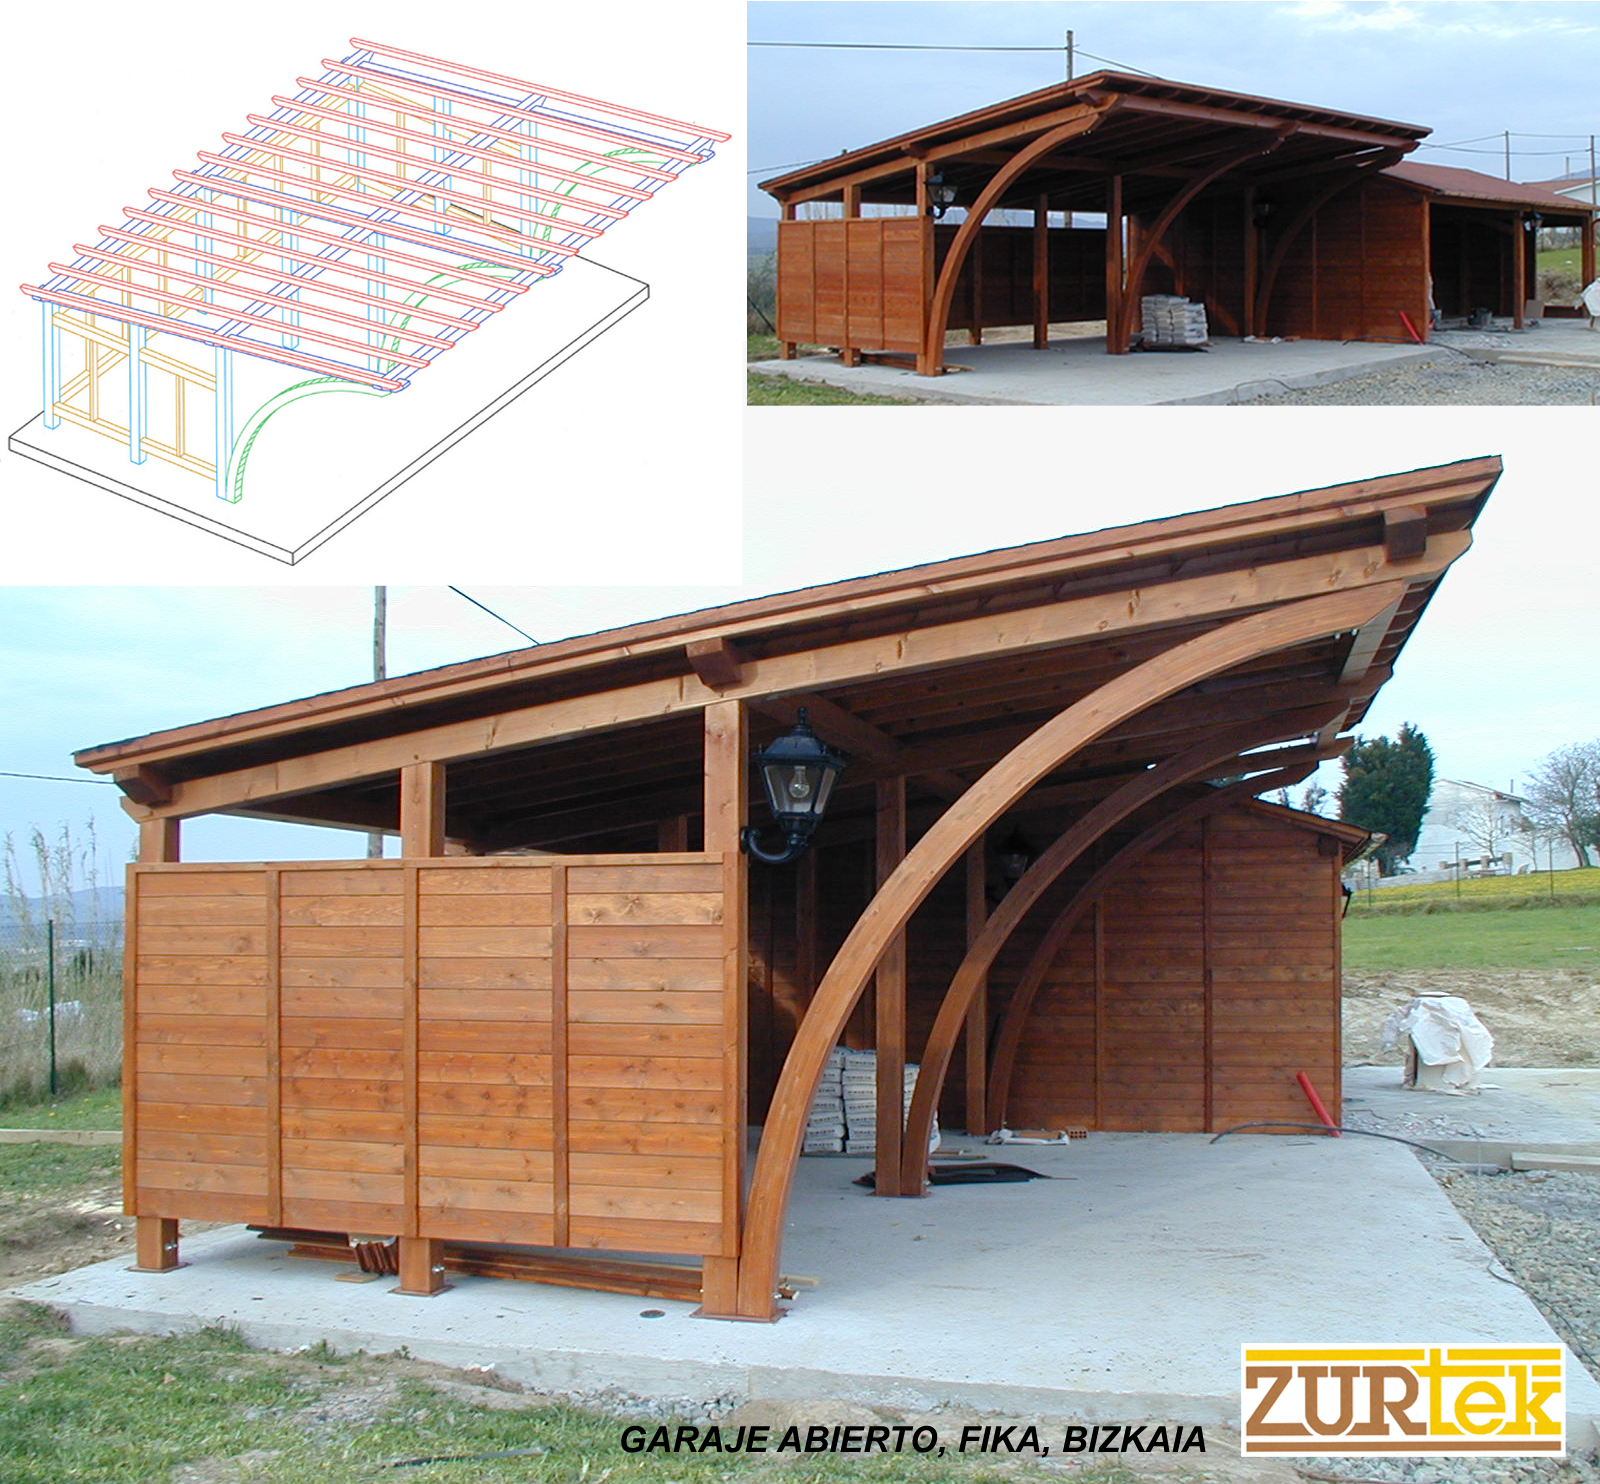 Gallery porches and pergolas zurtek engineering - Porches en madera ...